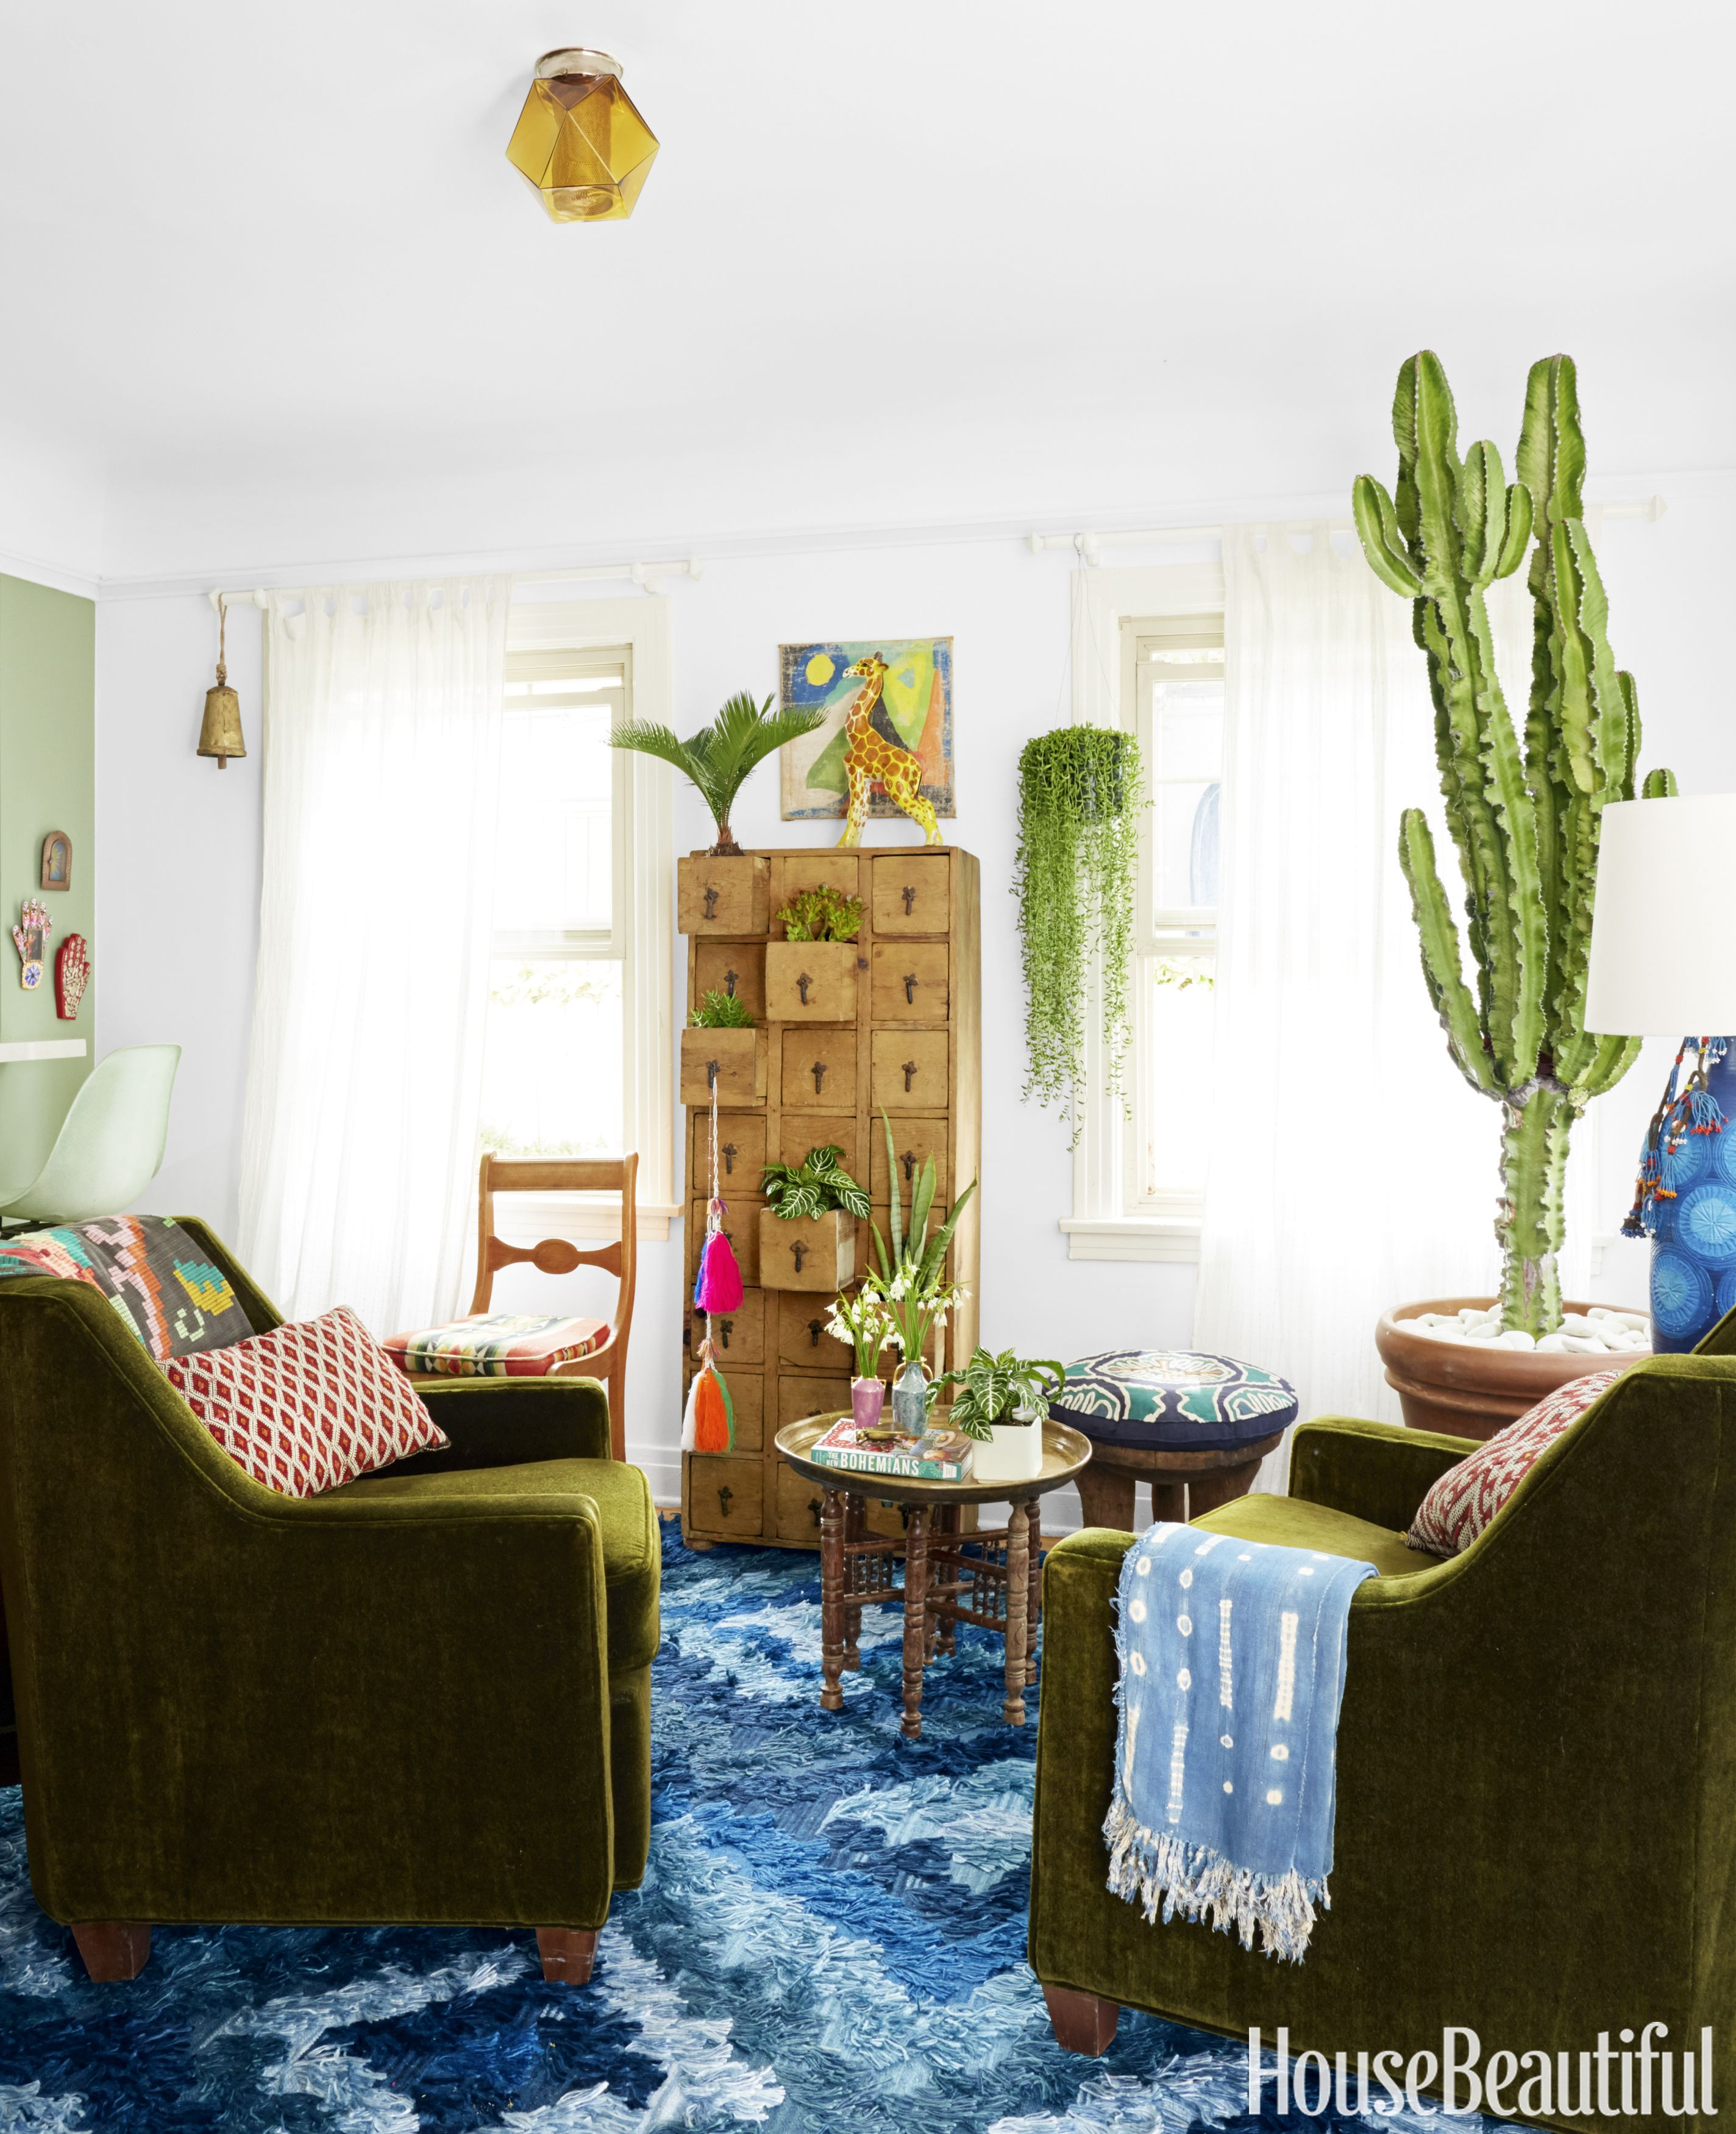 The Living Room Is Anchored By A Tall Euphorbia Plant, Which Is Similar To A